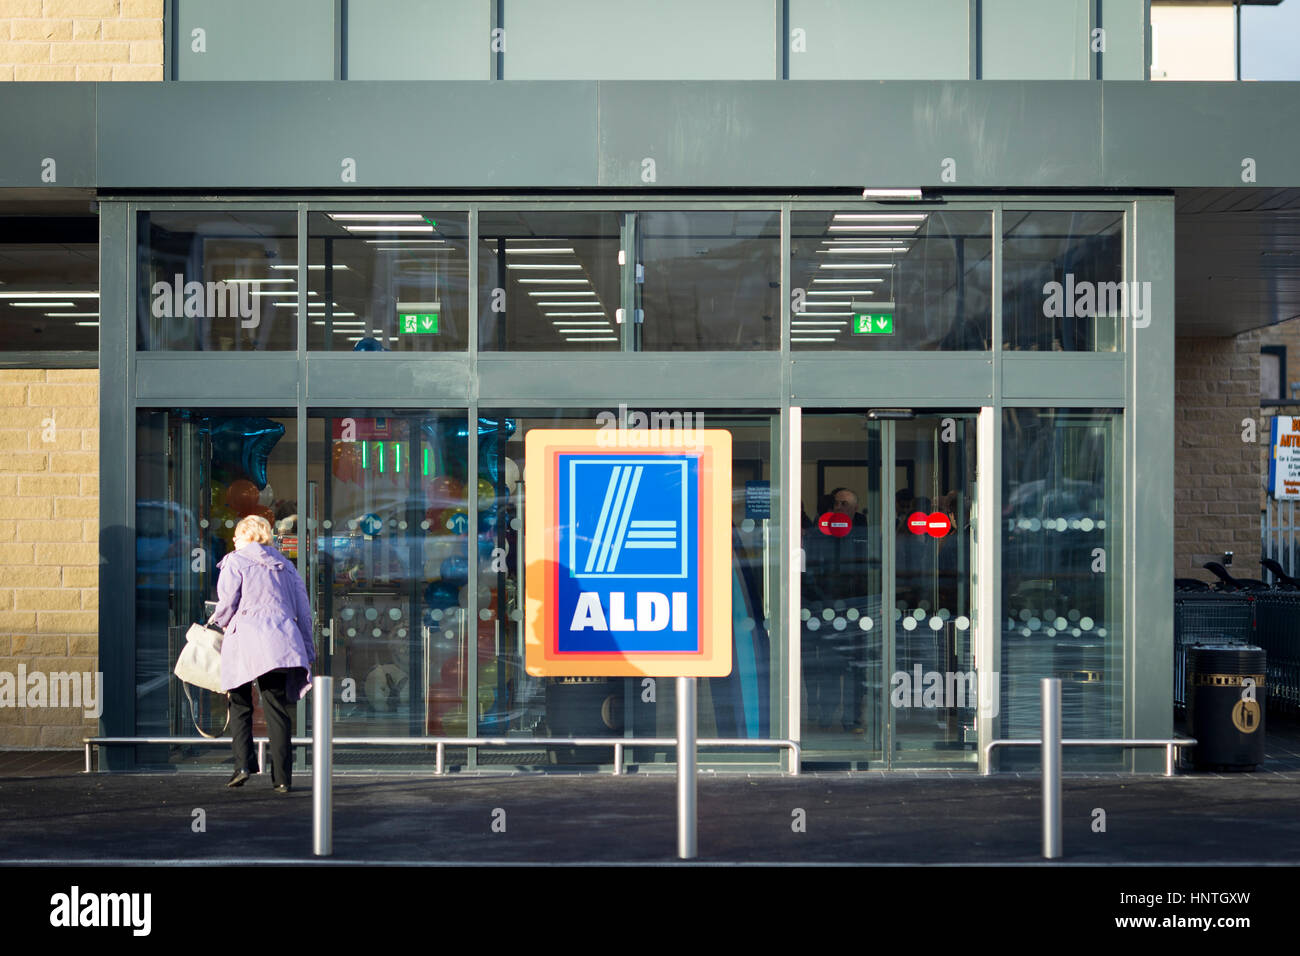 Aldi Supermarket store. Exterior shot of store front with Aldi sign - Stock Image